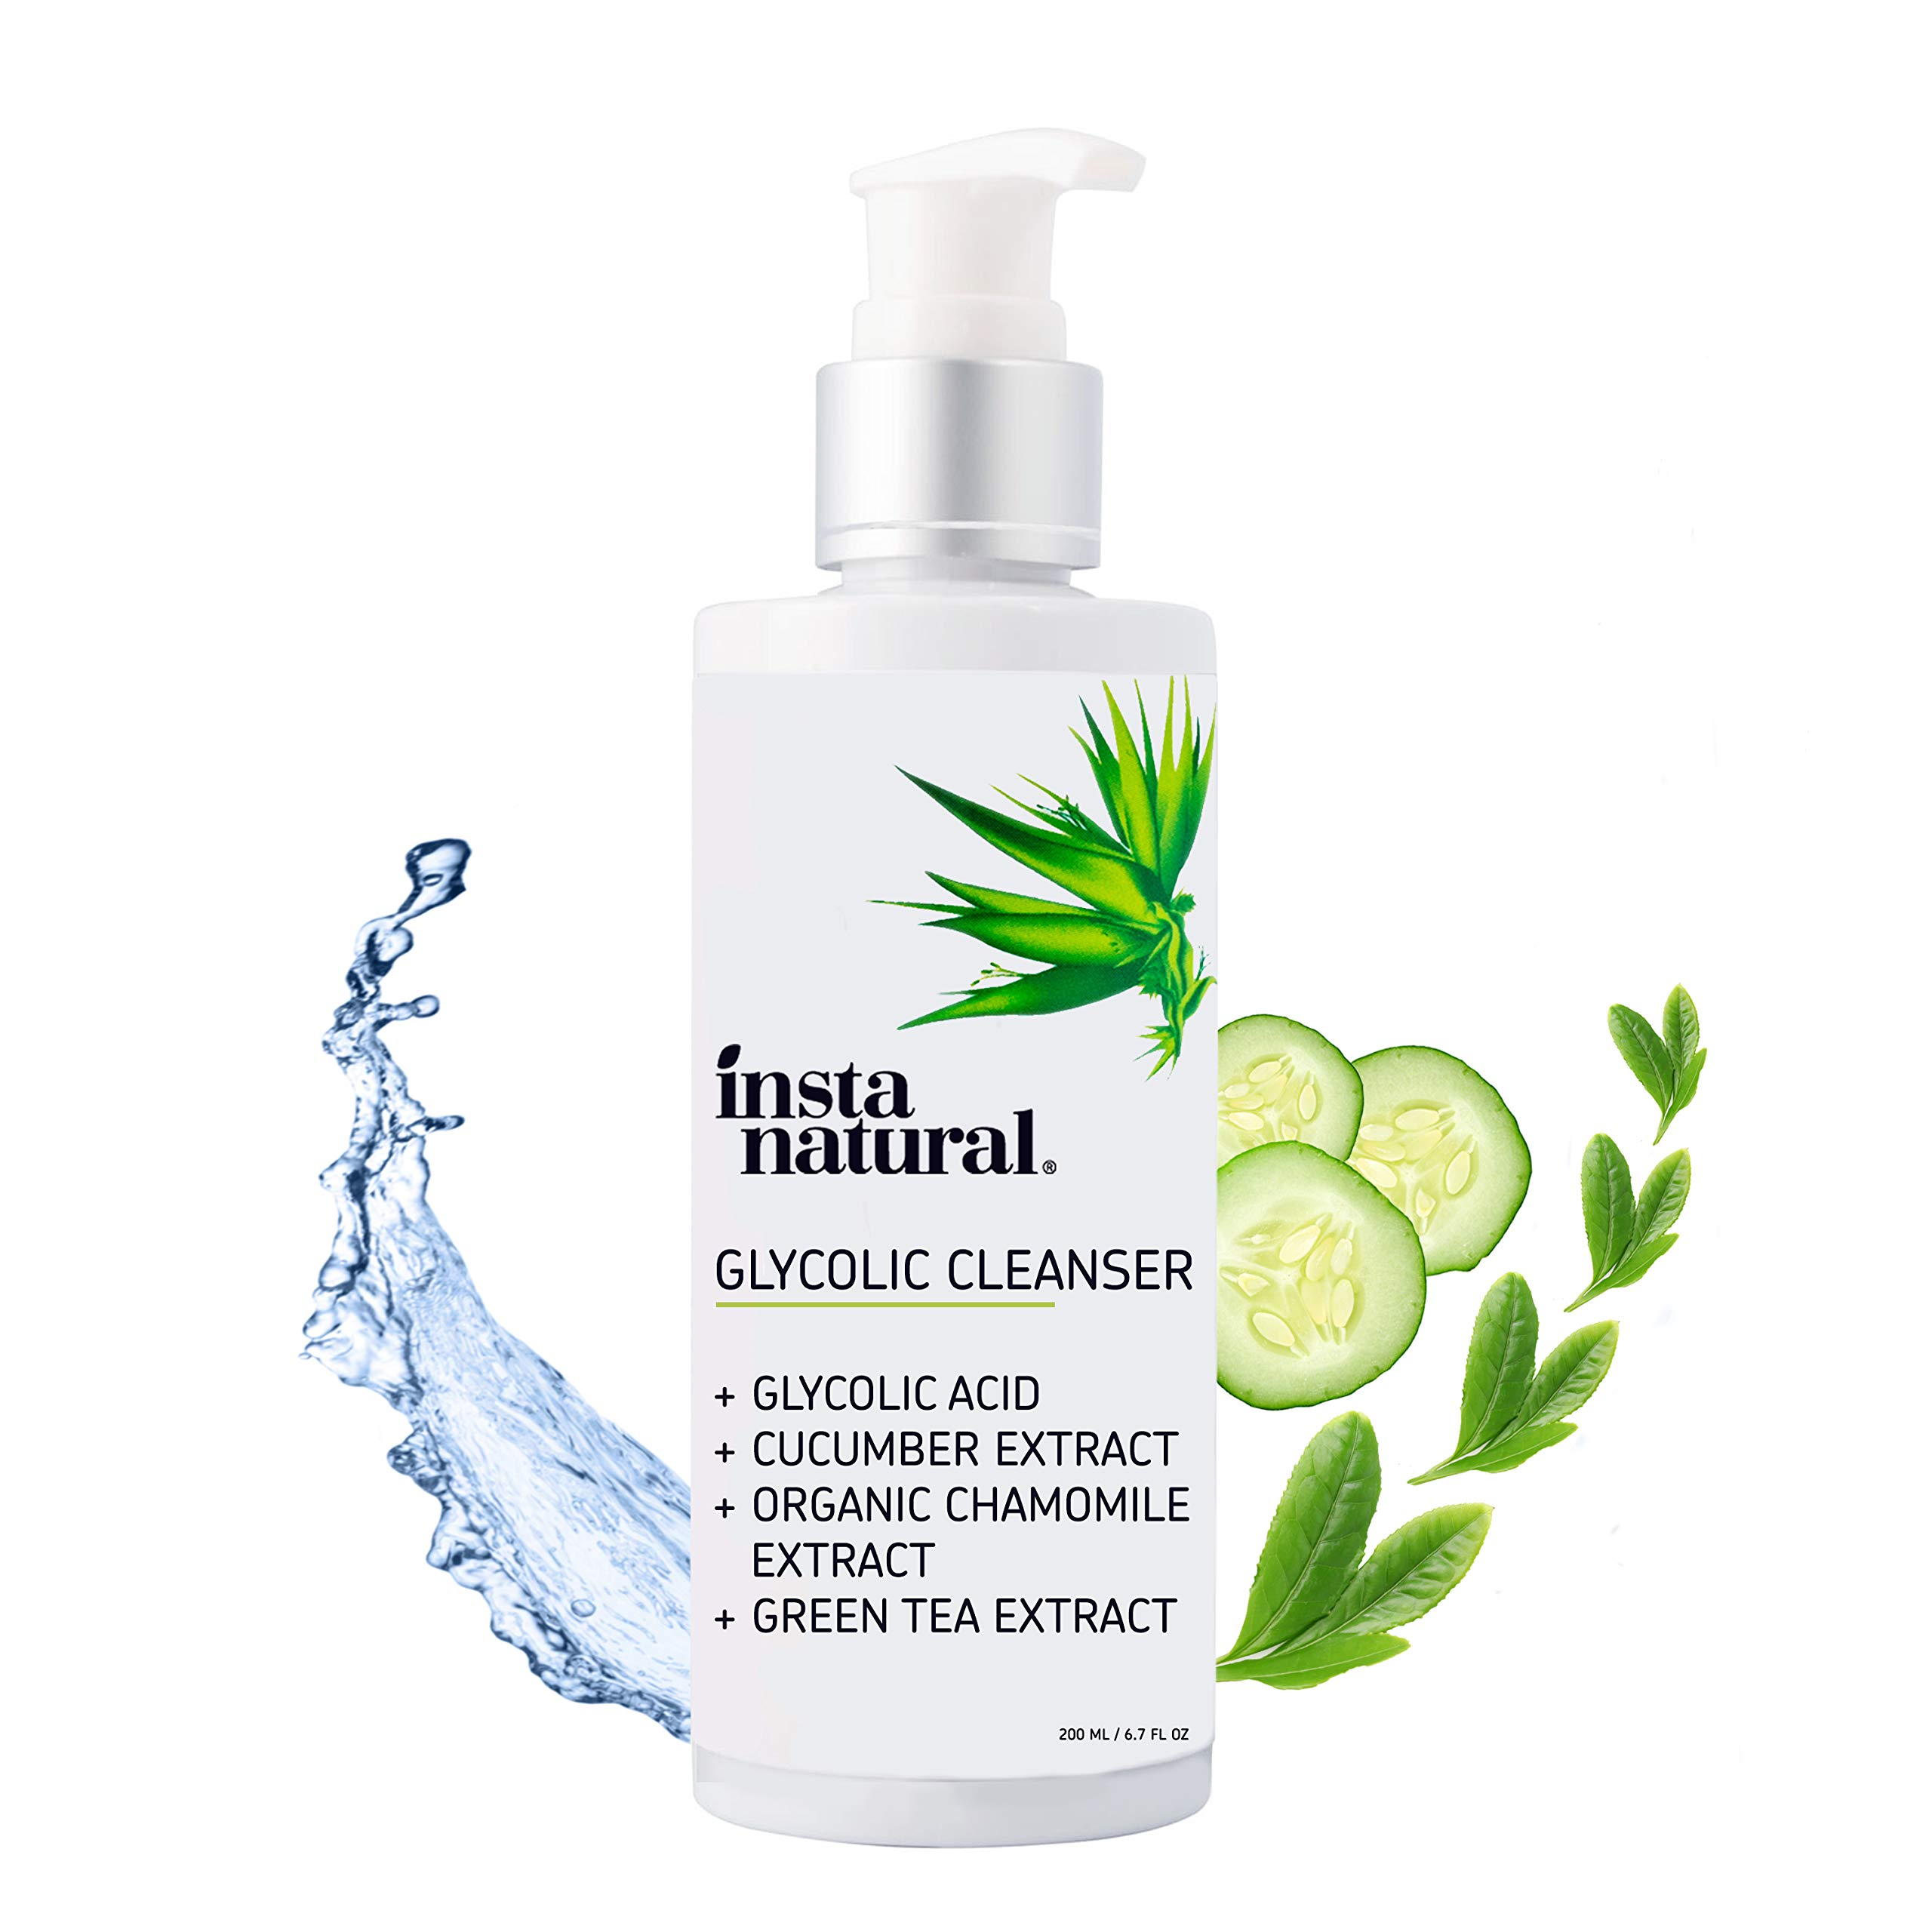 Glycolic Acid Facial Cleanser - Wrinkle, Fine Line, Age Spot, Acne & Hyperpigmentation Exfoliating Face Wash - Clear Skin & Pores - Glycolic, Organic Extract Blend & Arginine - InstaNatural - 6.7 oz by InstaNatural